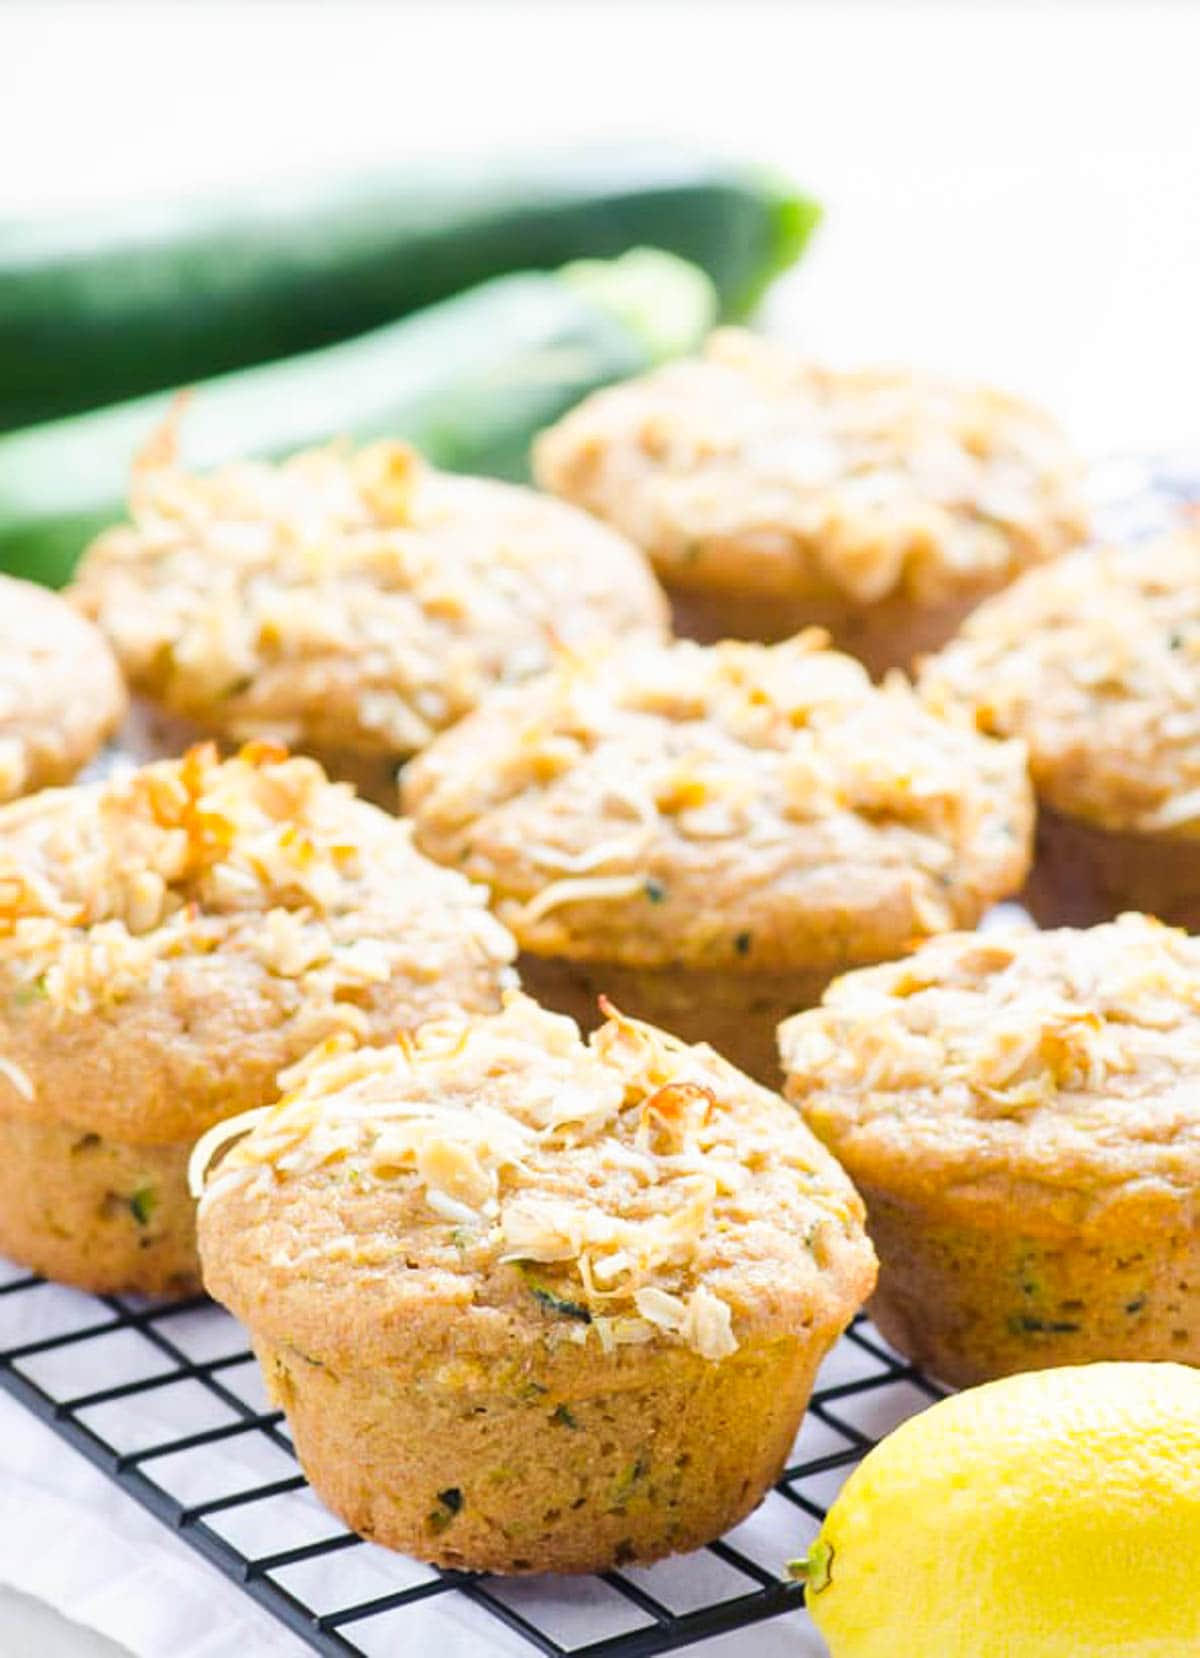 Lemon Zucchini Muffins Recipe made healthy with whole wheat flour, plain yogurt, zucchini and no sugar. | ifoodreal.com